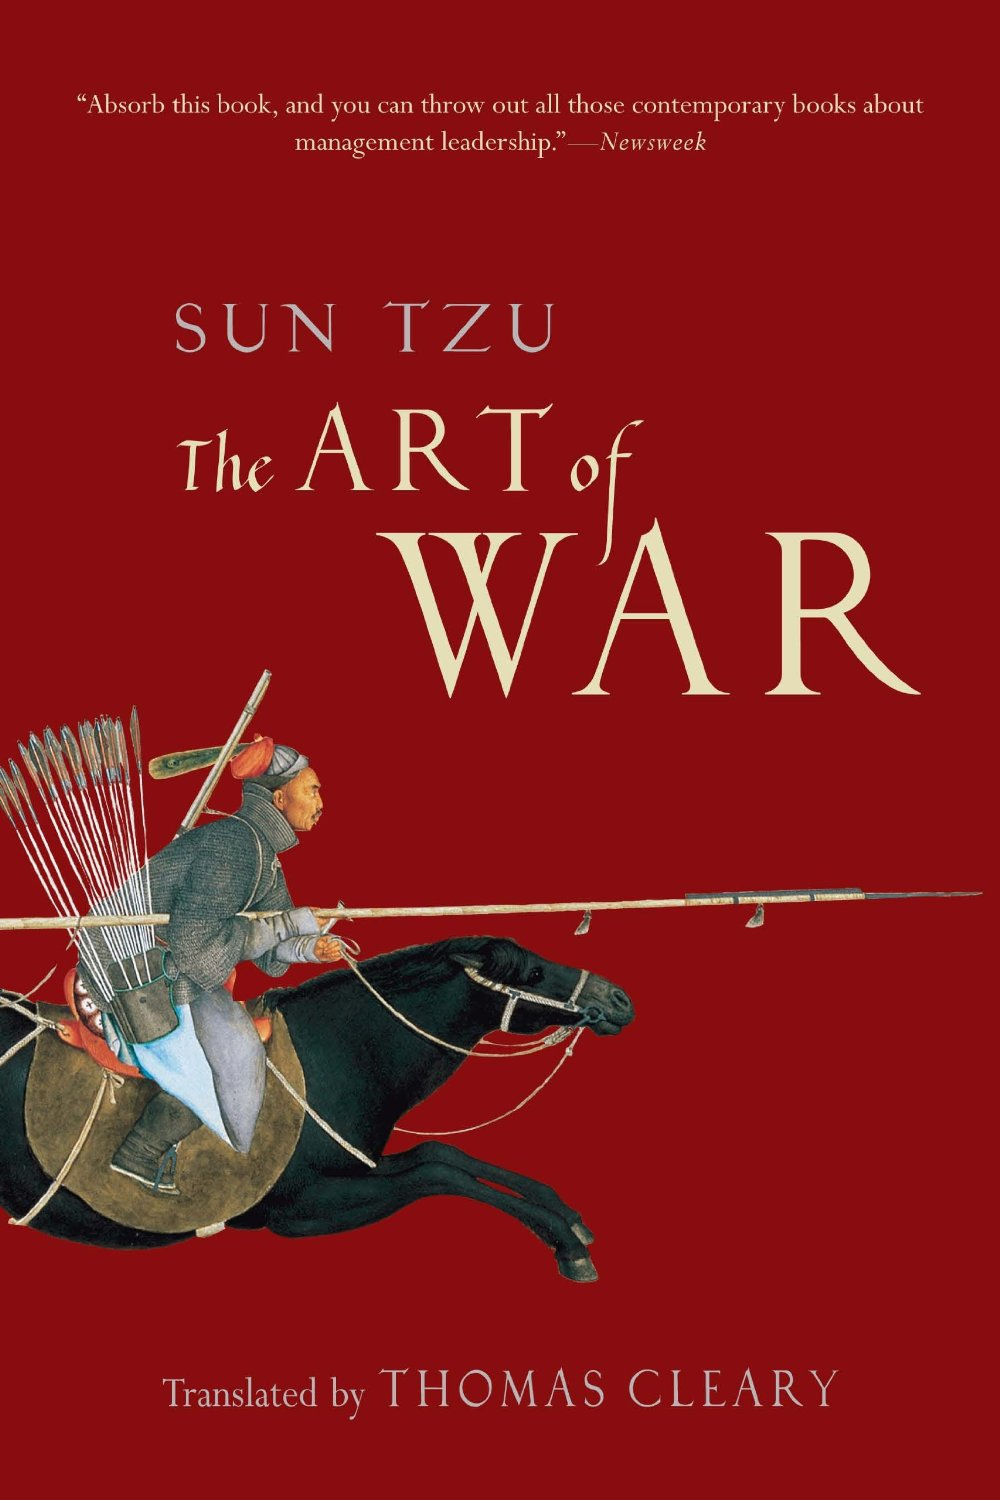 The Art of War                               By Sun Tzu, 68 pages. The cunning yet ruthless ancient Chinese military handbook has proved instructive for centuries—Tony even made use of it in The Sopranos.